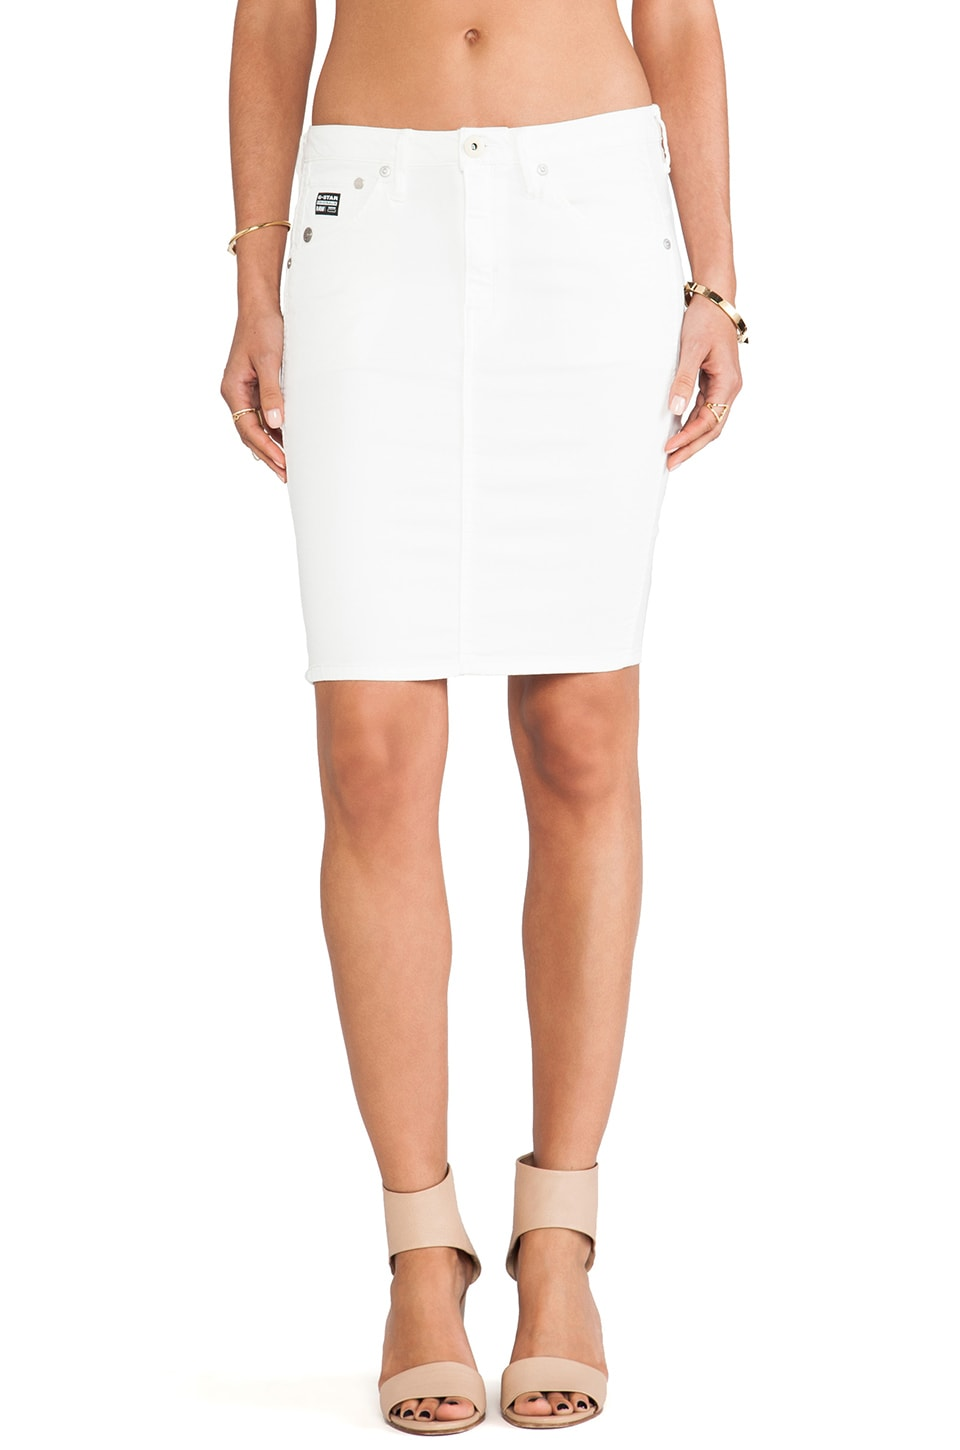 G-Star Arc Super Slim Skirt in White Talc Lt Aged